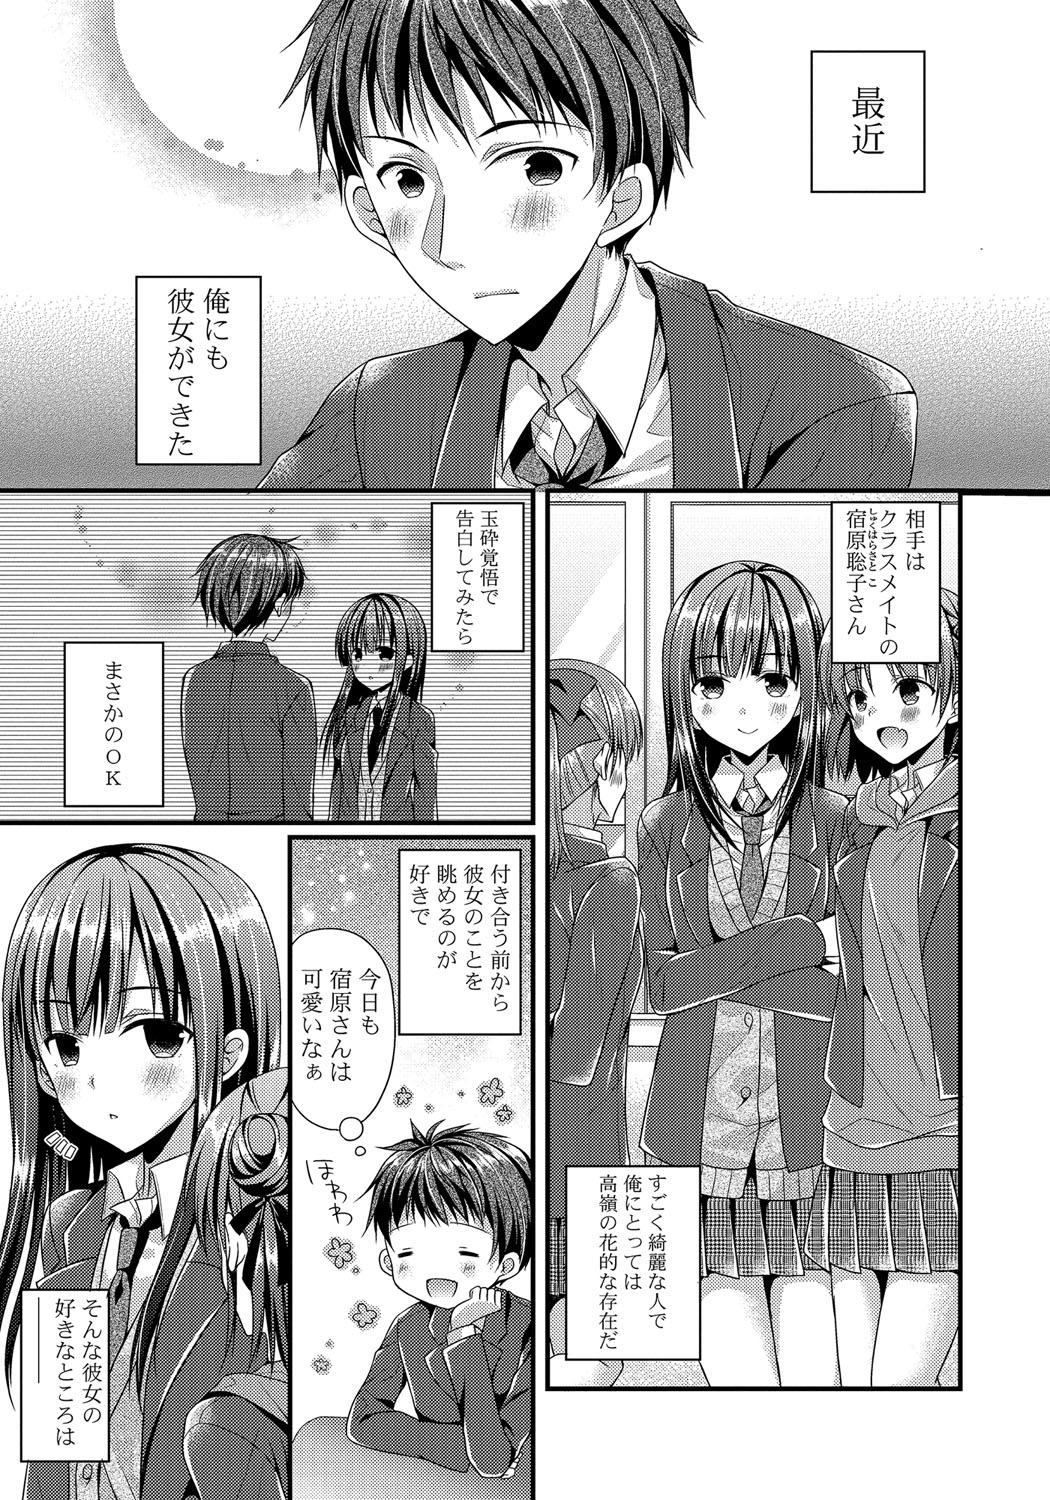 Kanojo to Hajimeteno - For the First Time with Her 23